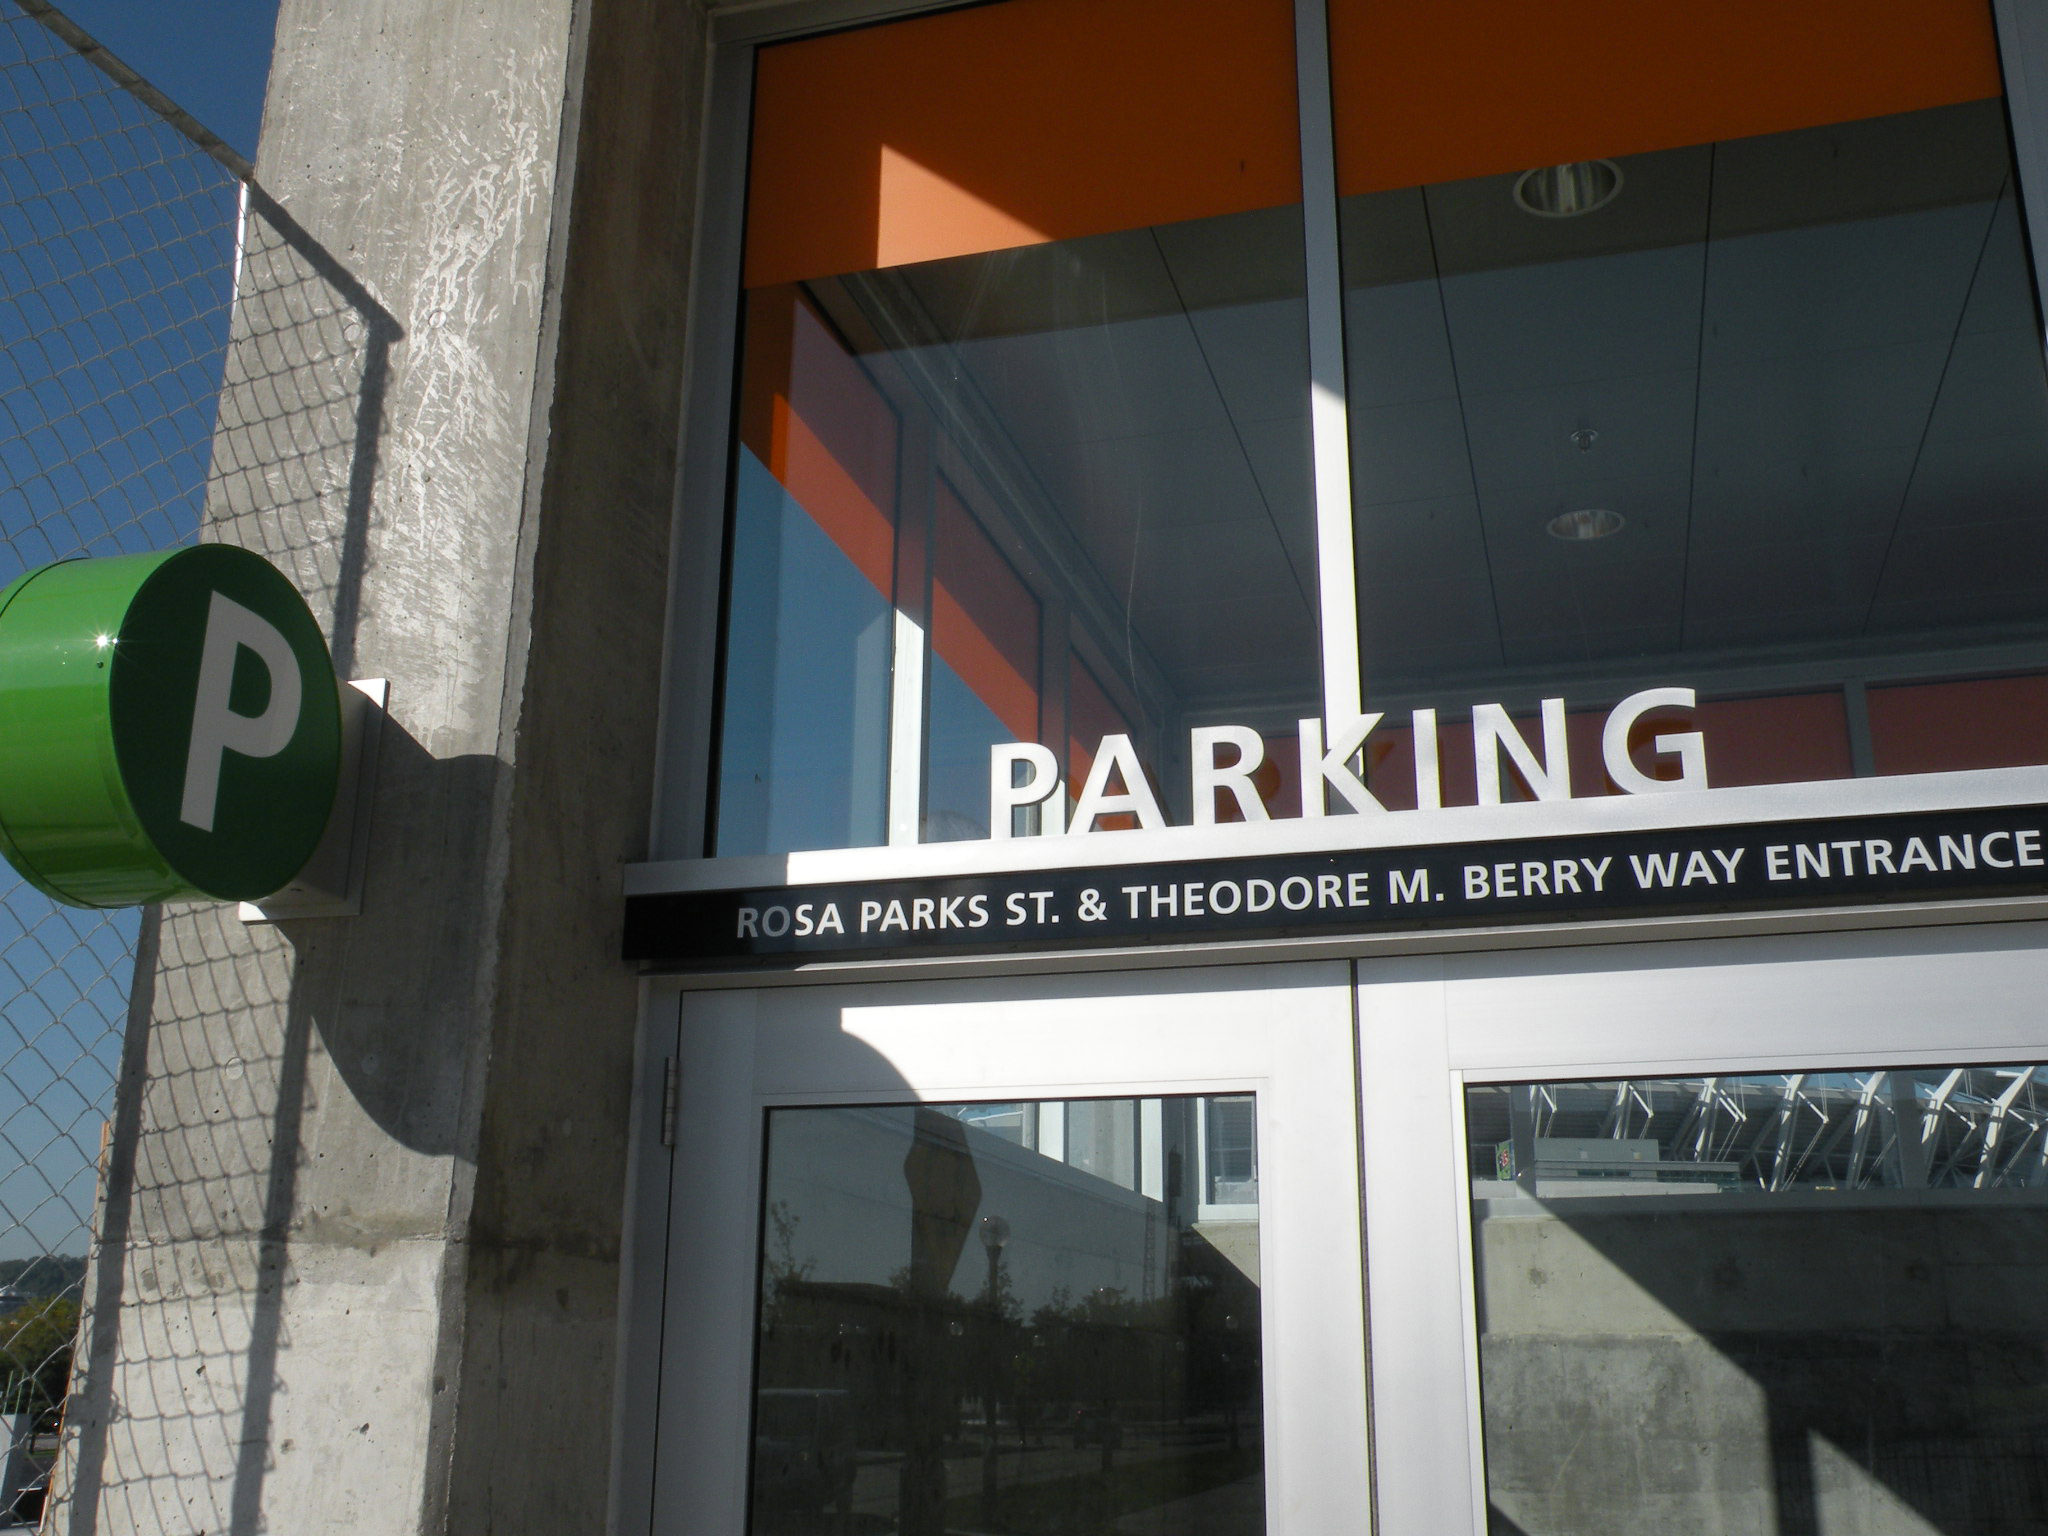 The Banks Cincinnati Parking